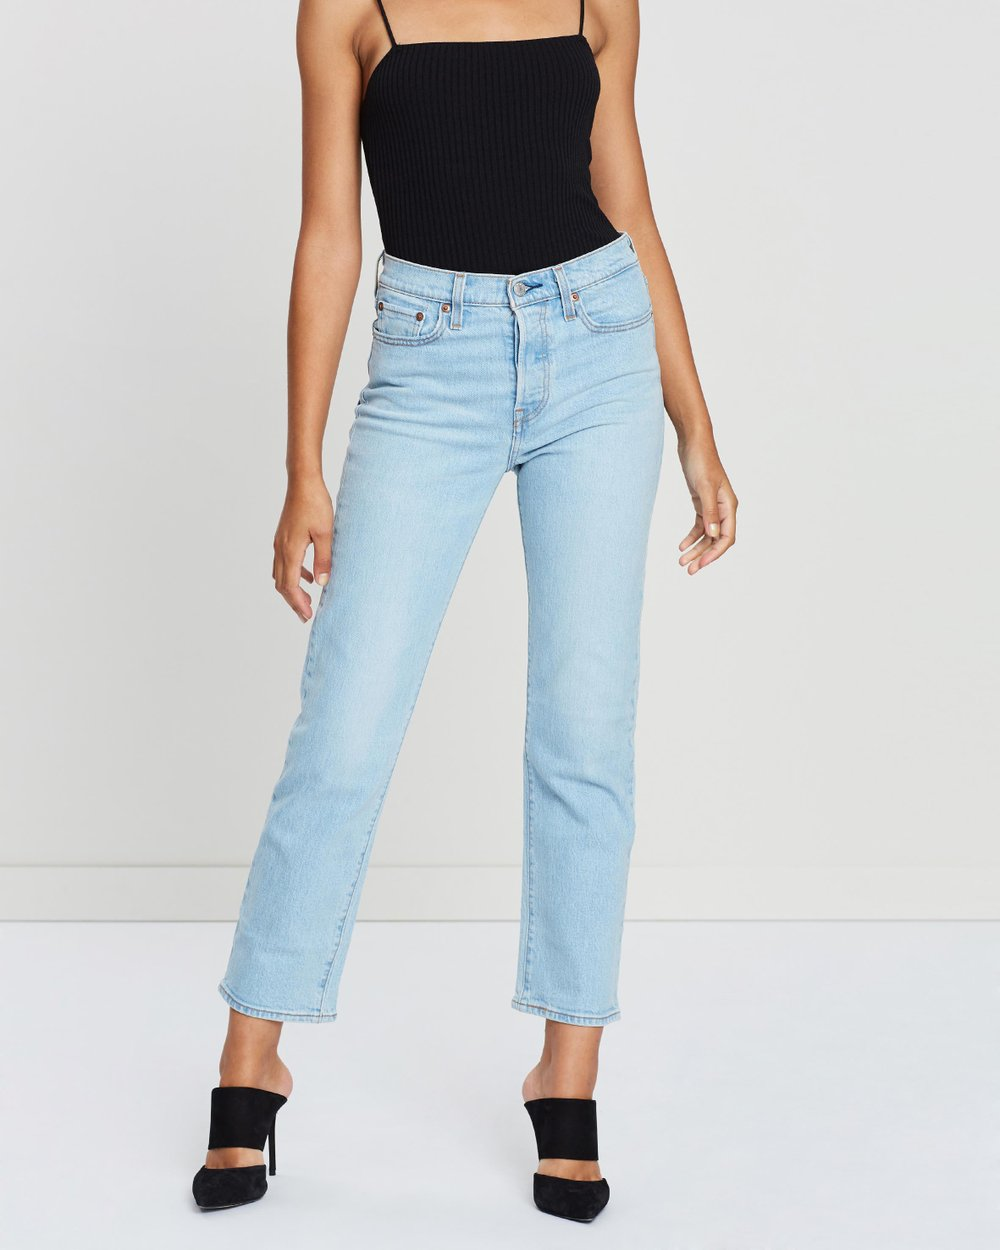 6a54c4b6 Wedgie Straight Jeans by Levi's Online | THE ICONIC | Australia